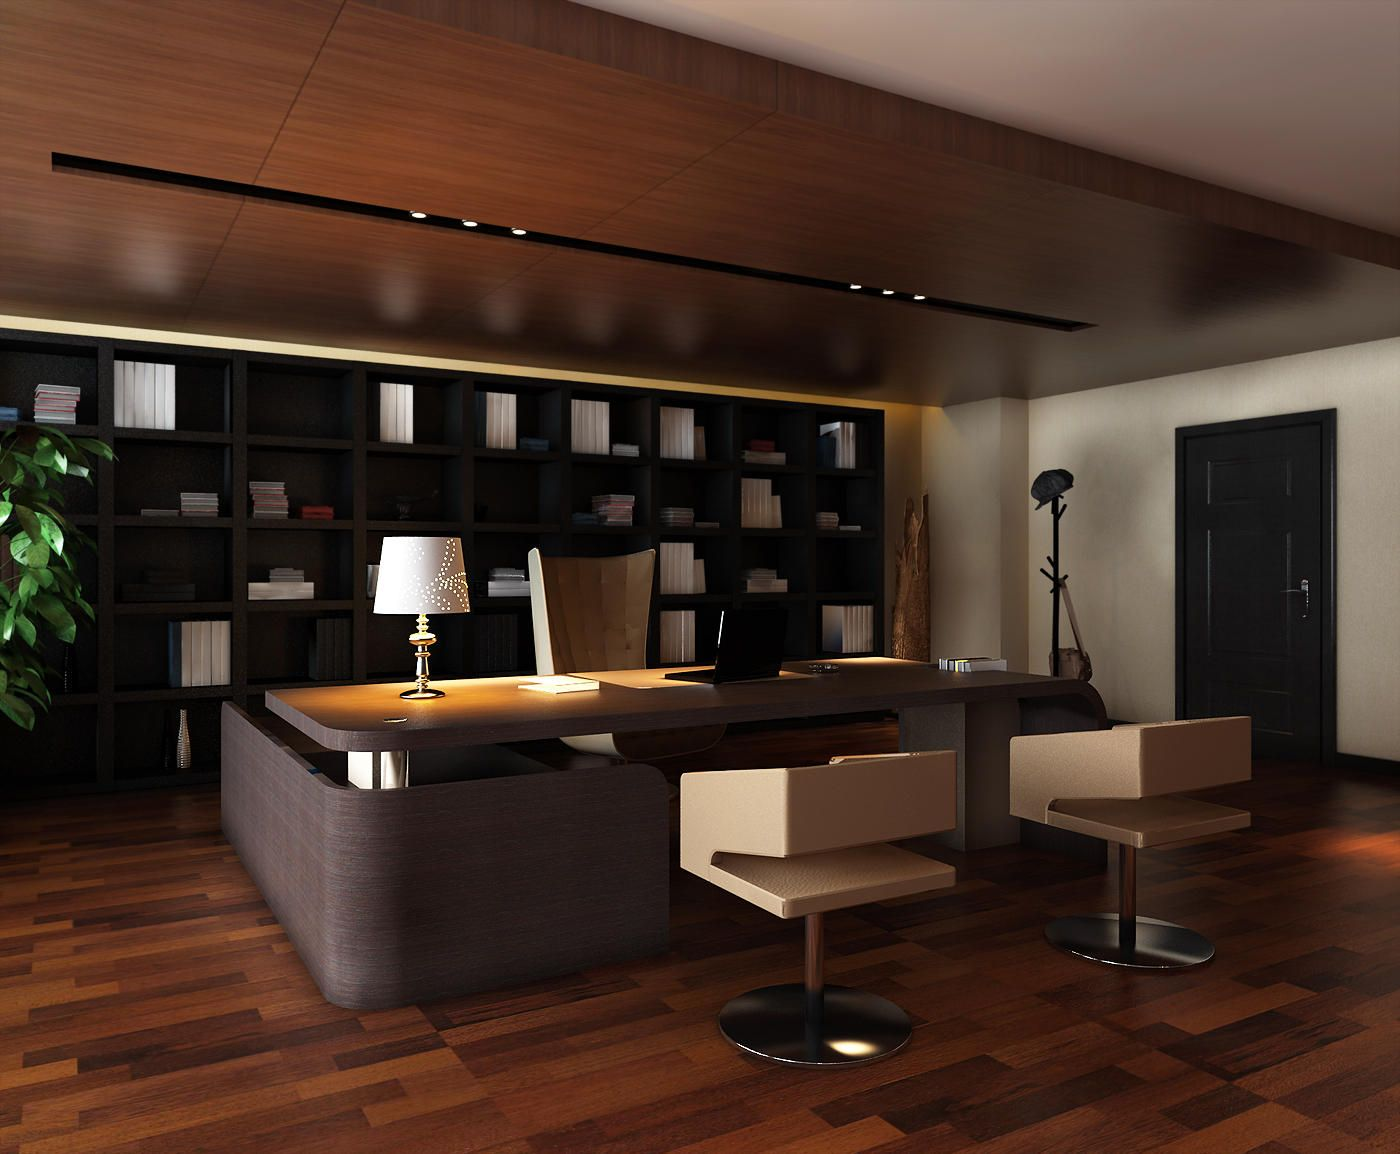 Alluring limitless executive office executive office for Office interior design ideas